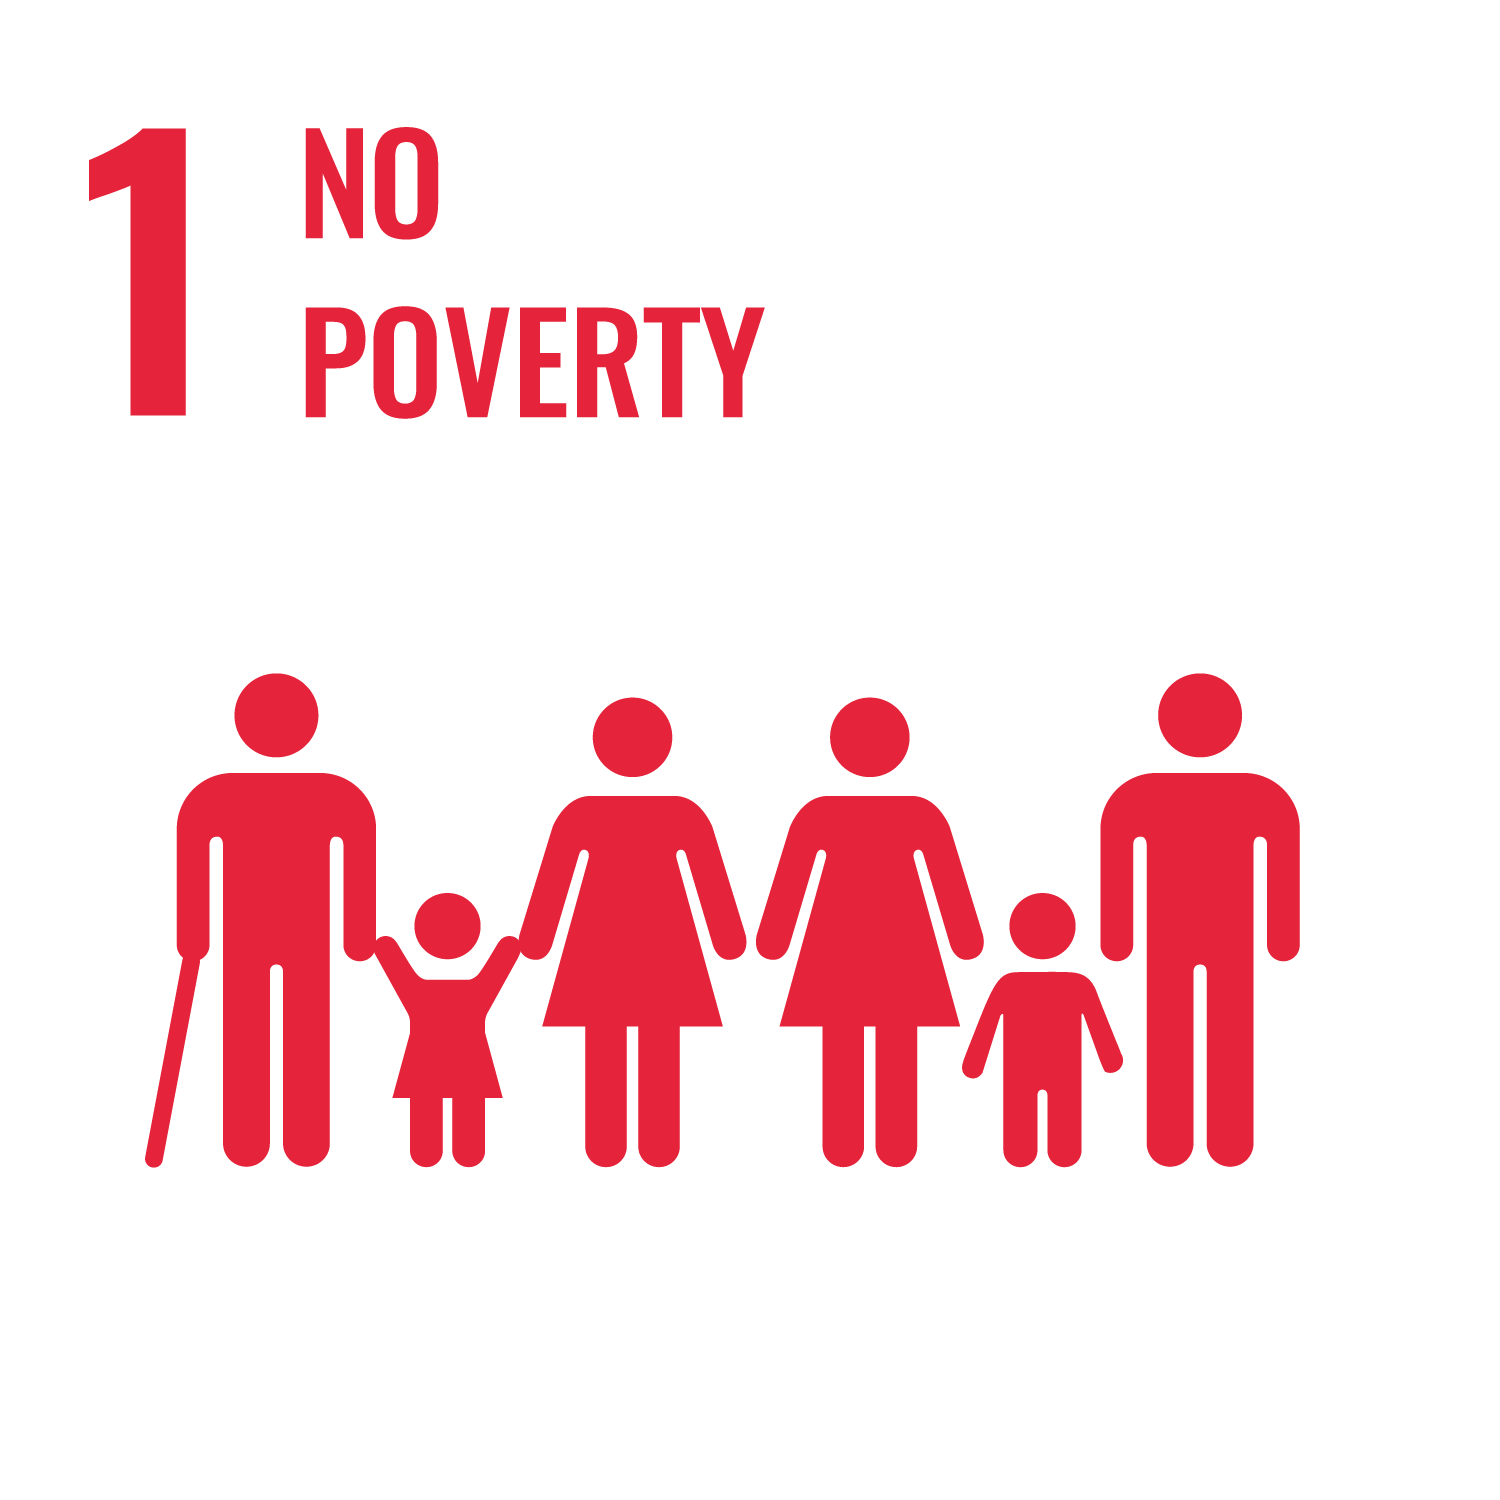 (1) No Poverty